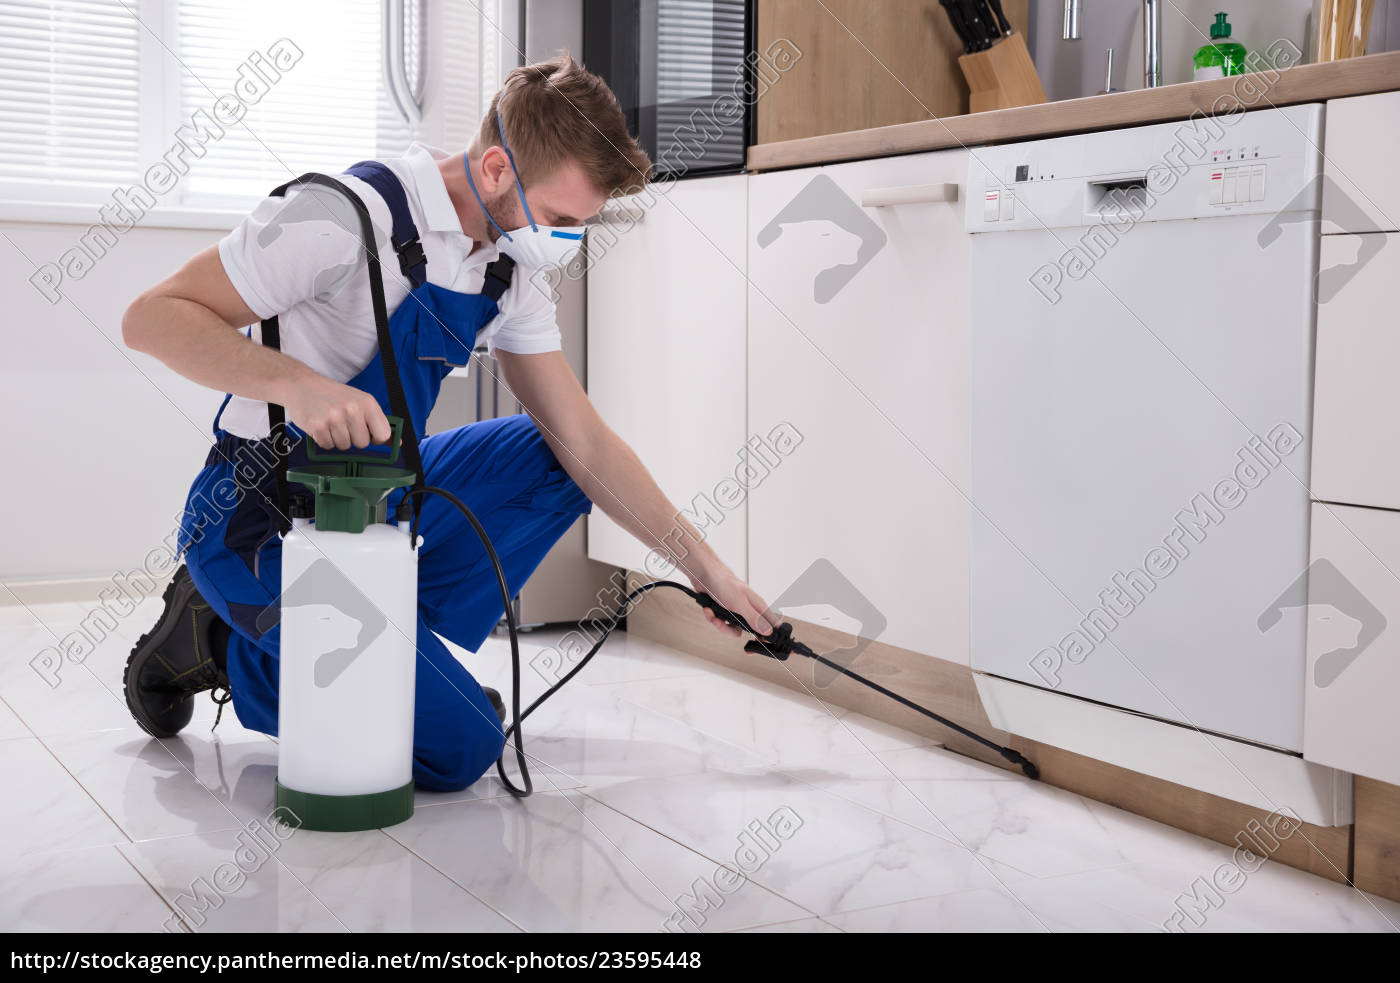 exterminator, worker, spraying, insecticide, chemical - 23595448